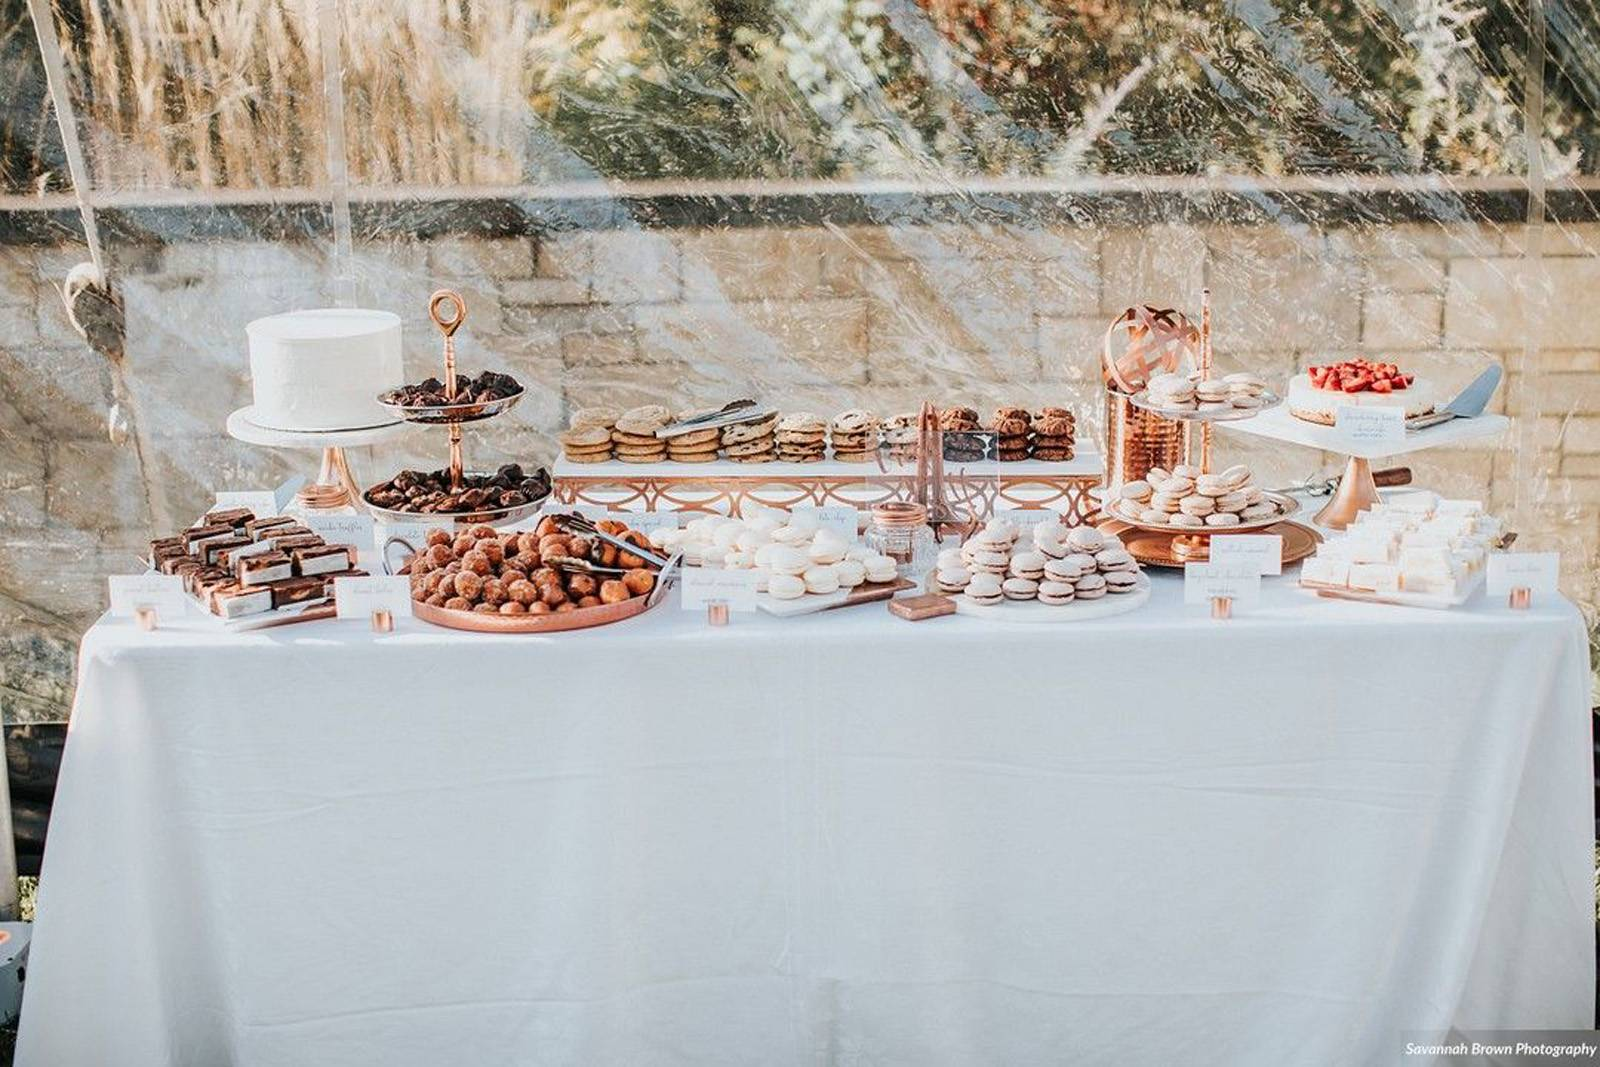 Dessert table set with various desserts by North Country Cakes at a tented reception